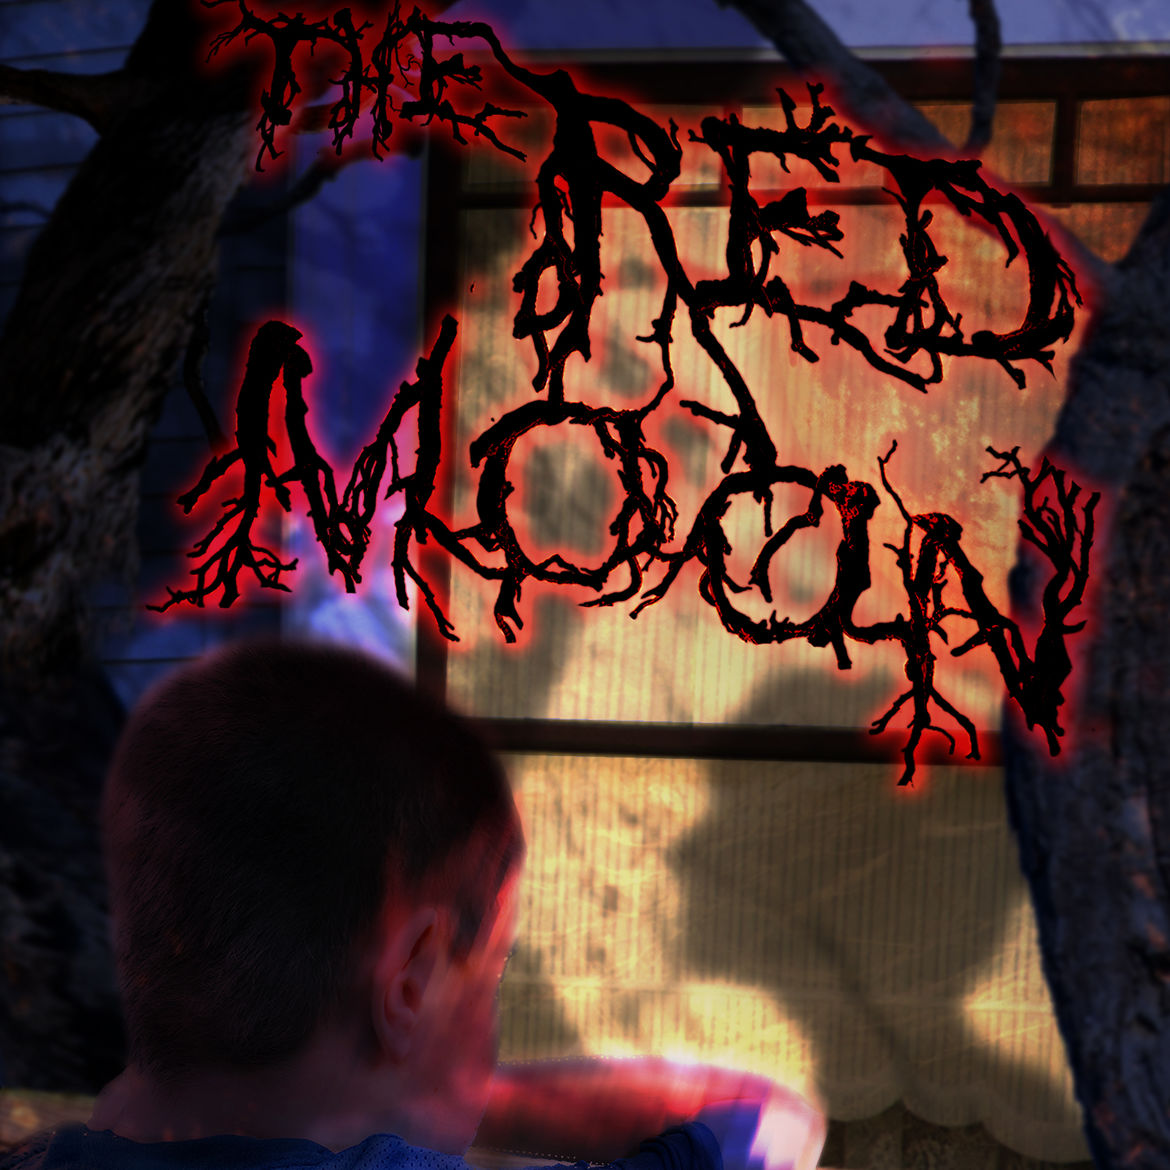 Cover Photo: The Red Moon by Mark A. Nobles